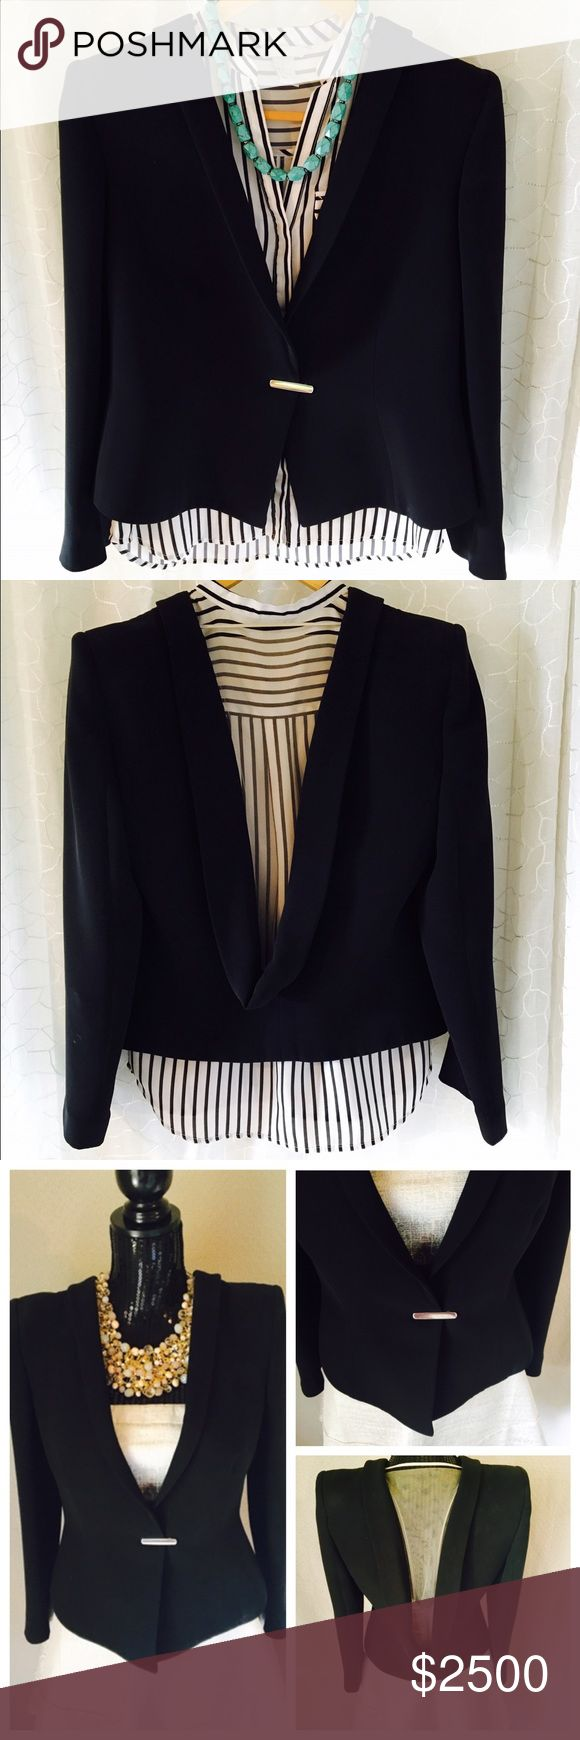 Limited Edition Giorgio Armani Black Blazer Authentic Giorgio Armani black blazer. Only Few in existence. Retailed at $5500. Worn less than 10 times and in Pristine condition. Accepting all offers. No trades please! Giorgio Armani Jackets & Coats Blazers